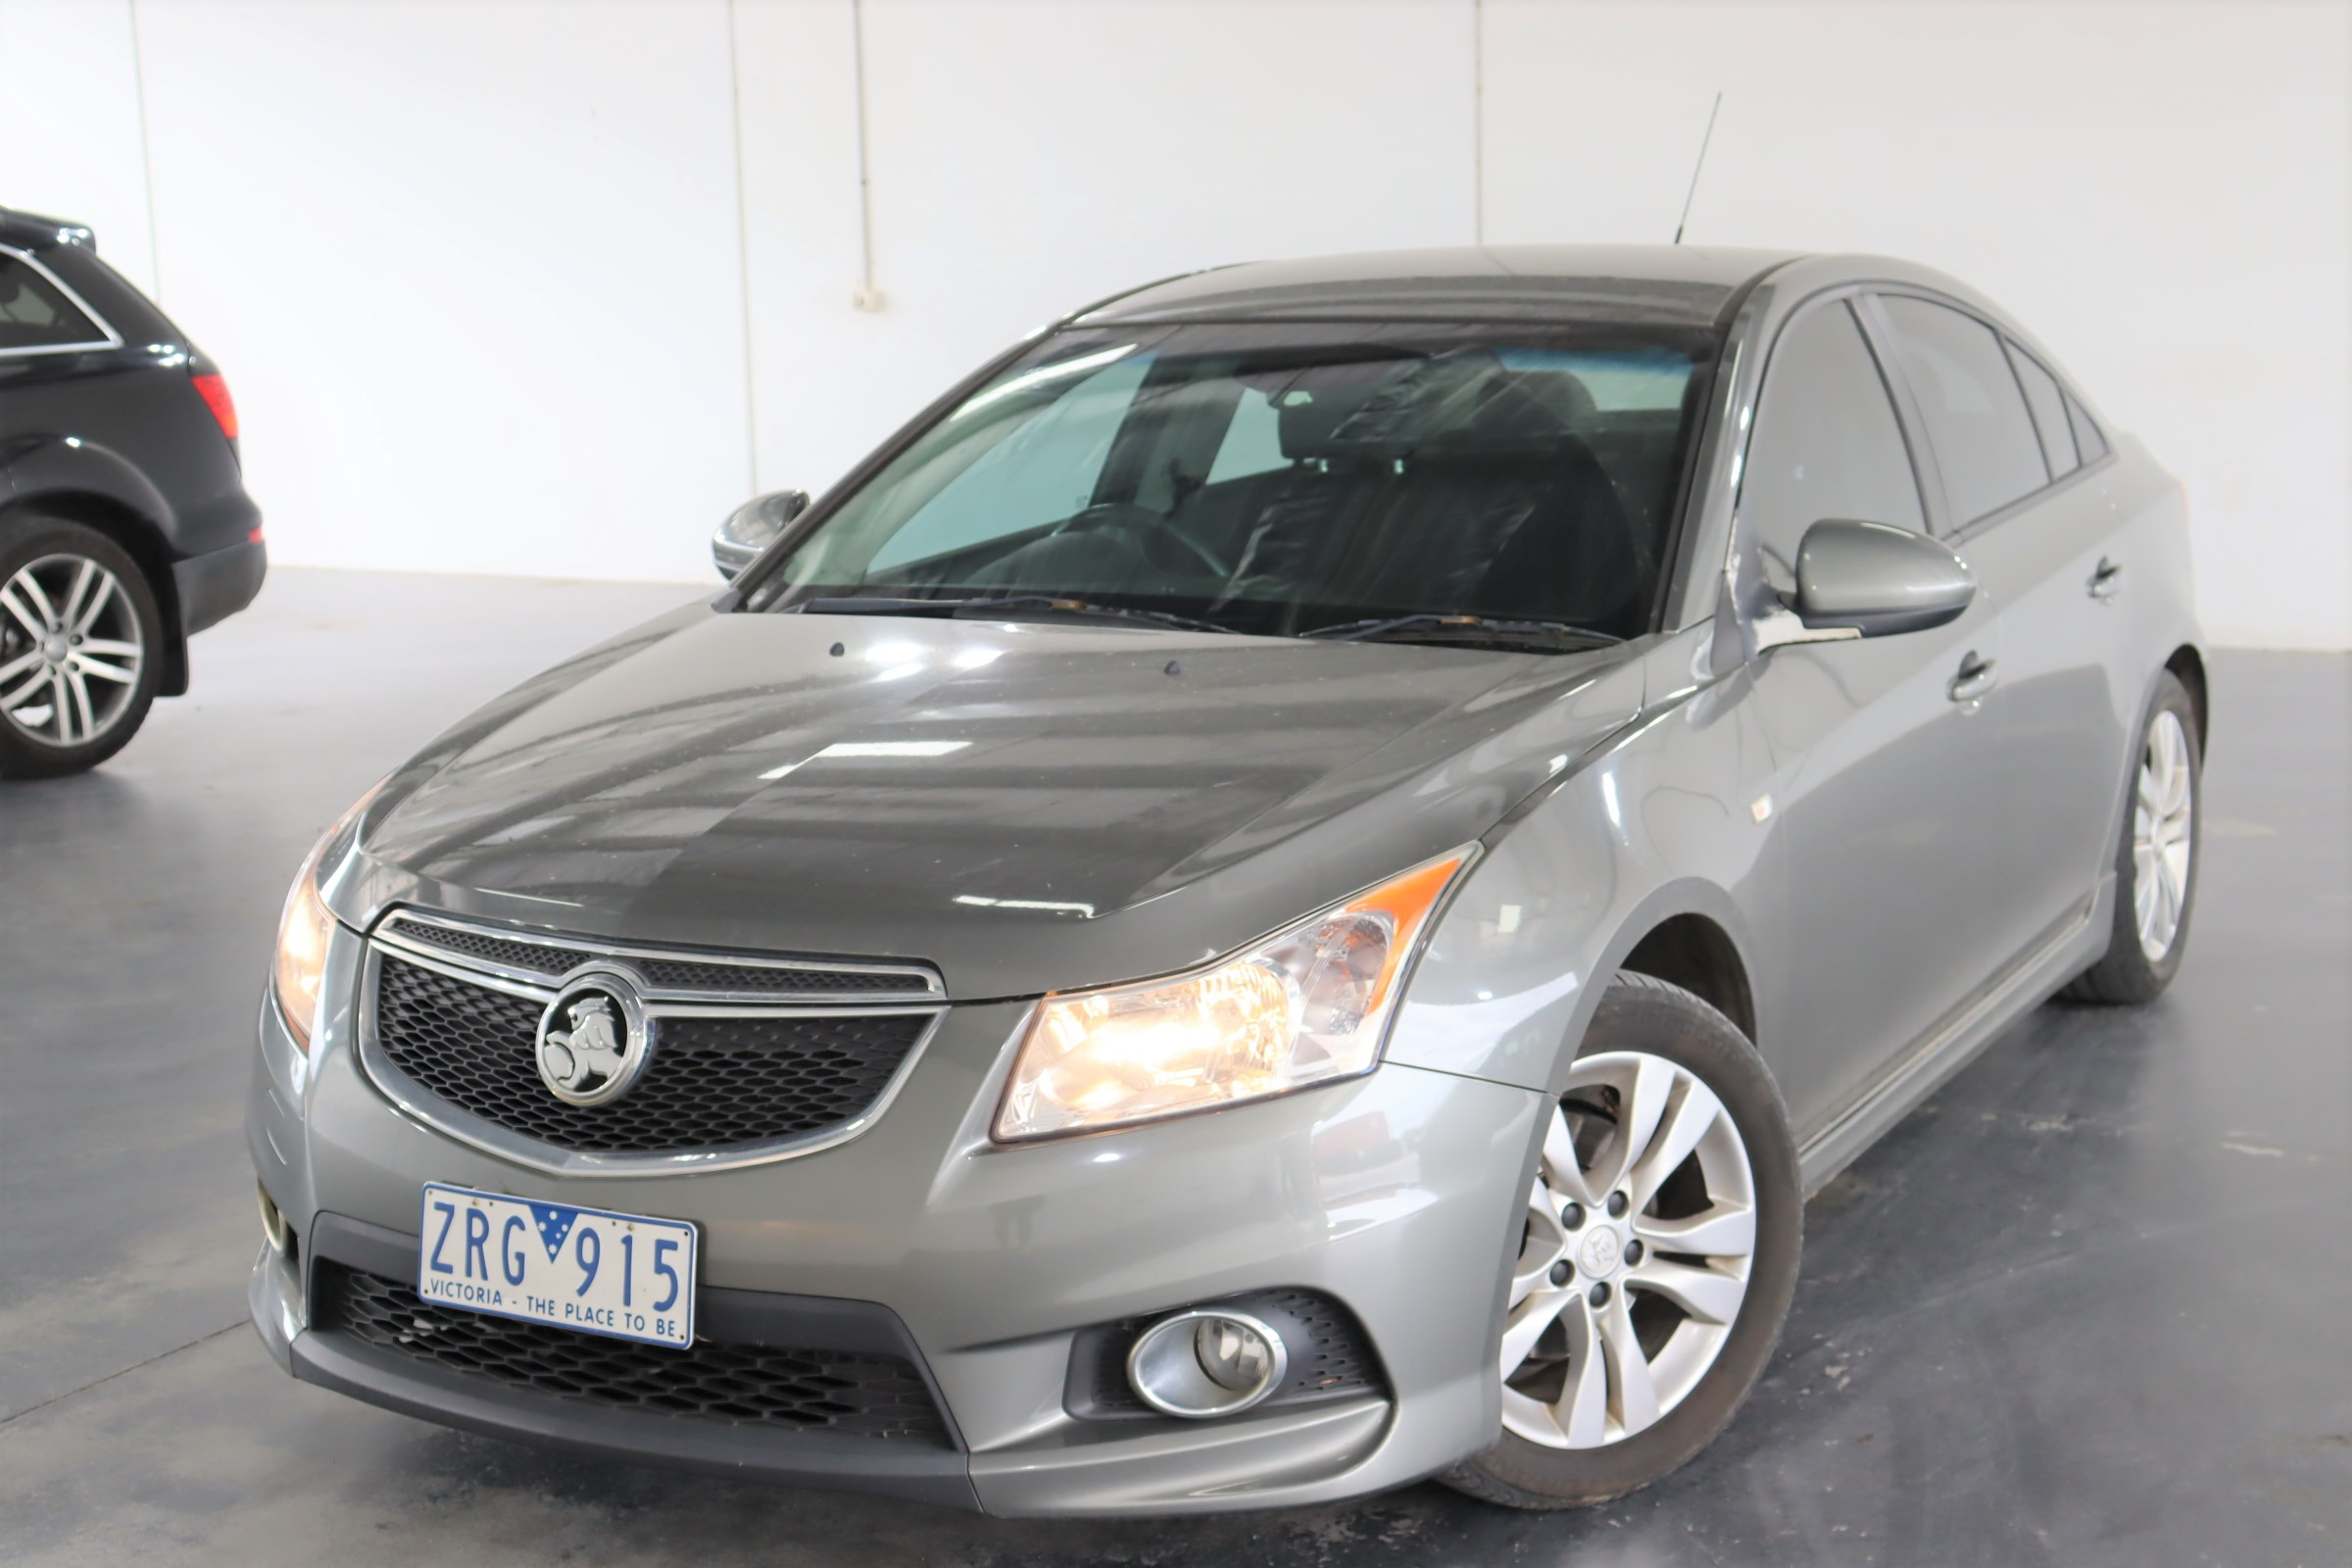 2013 Holden Cruze SRI JH Automatic Sedan